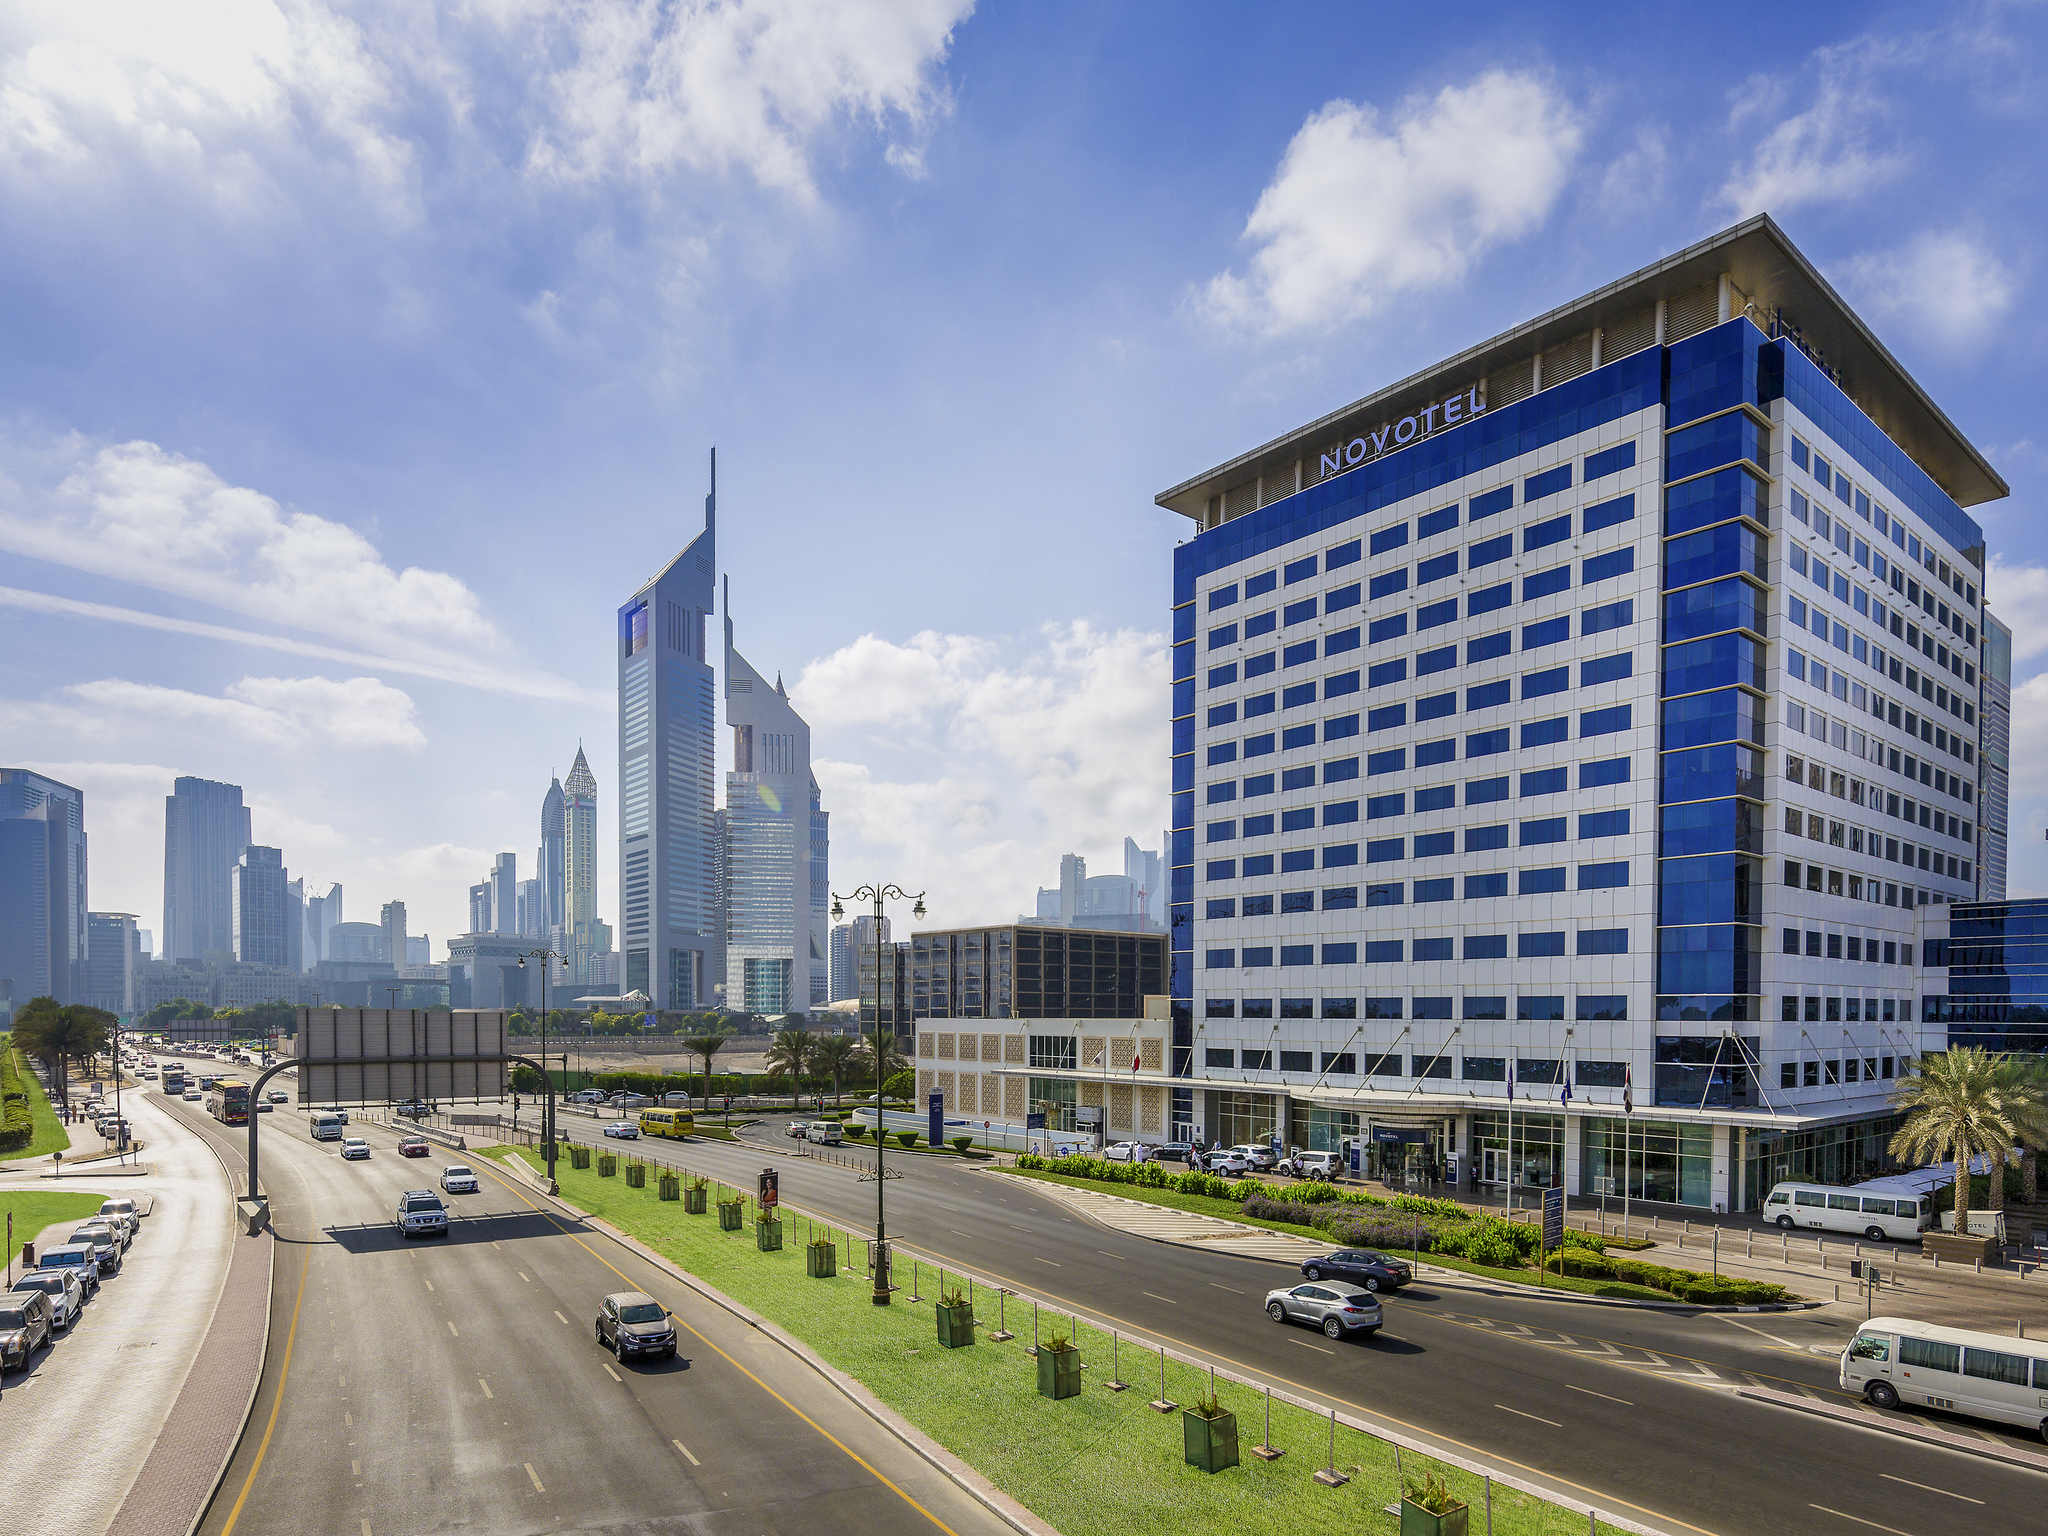 Hôtel novotel world trade centre dubaï